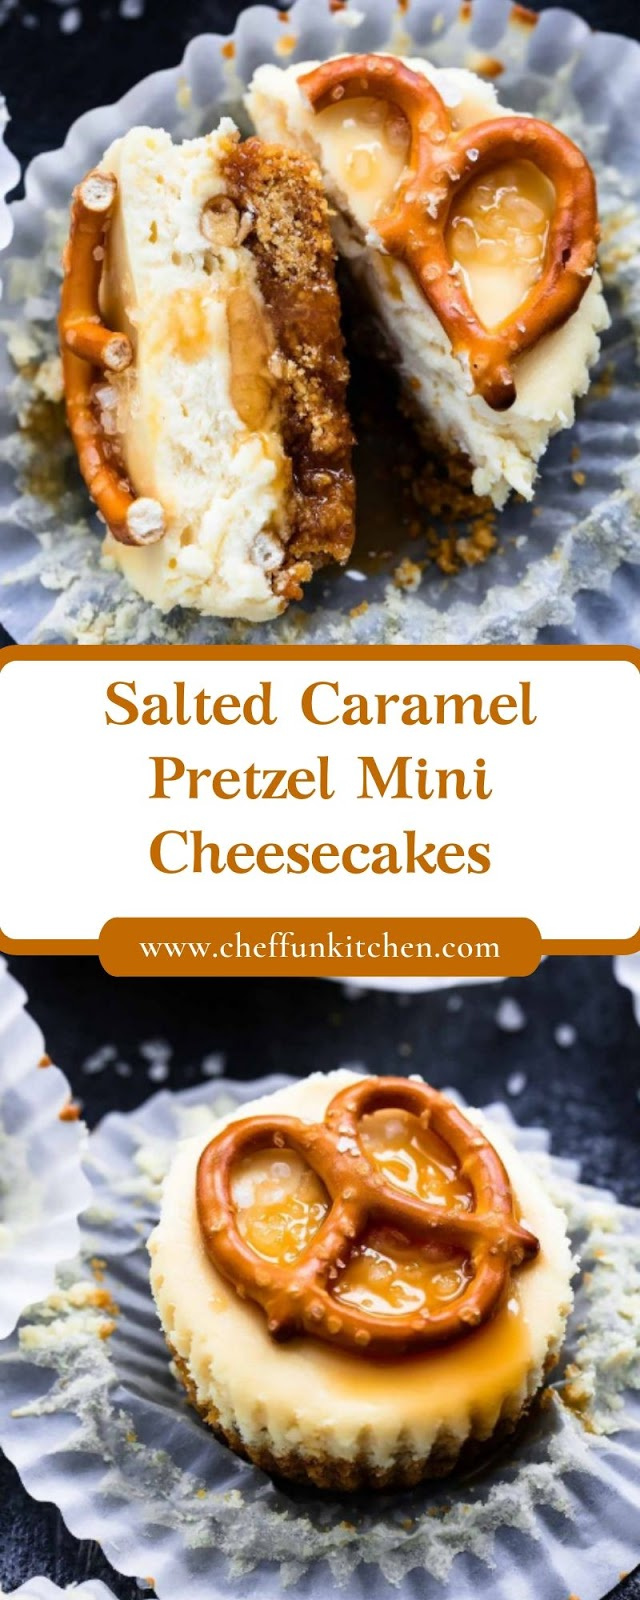 Salted Caramel Pretzel Mini Cheesecakes